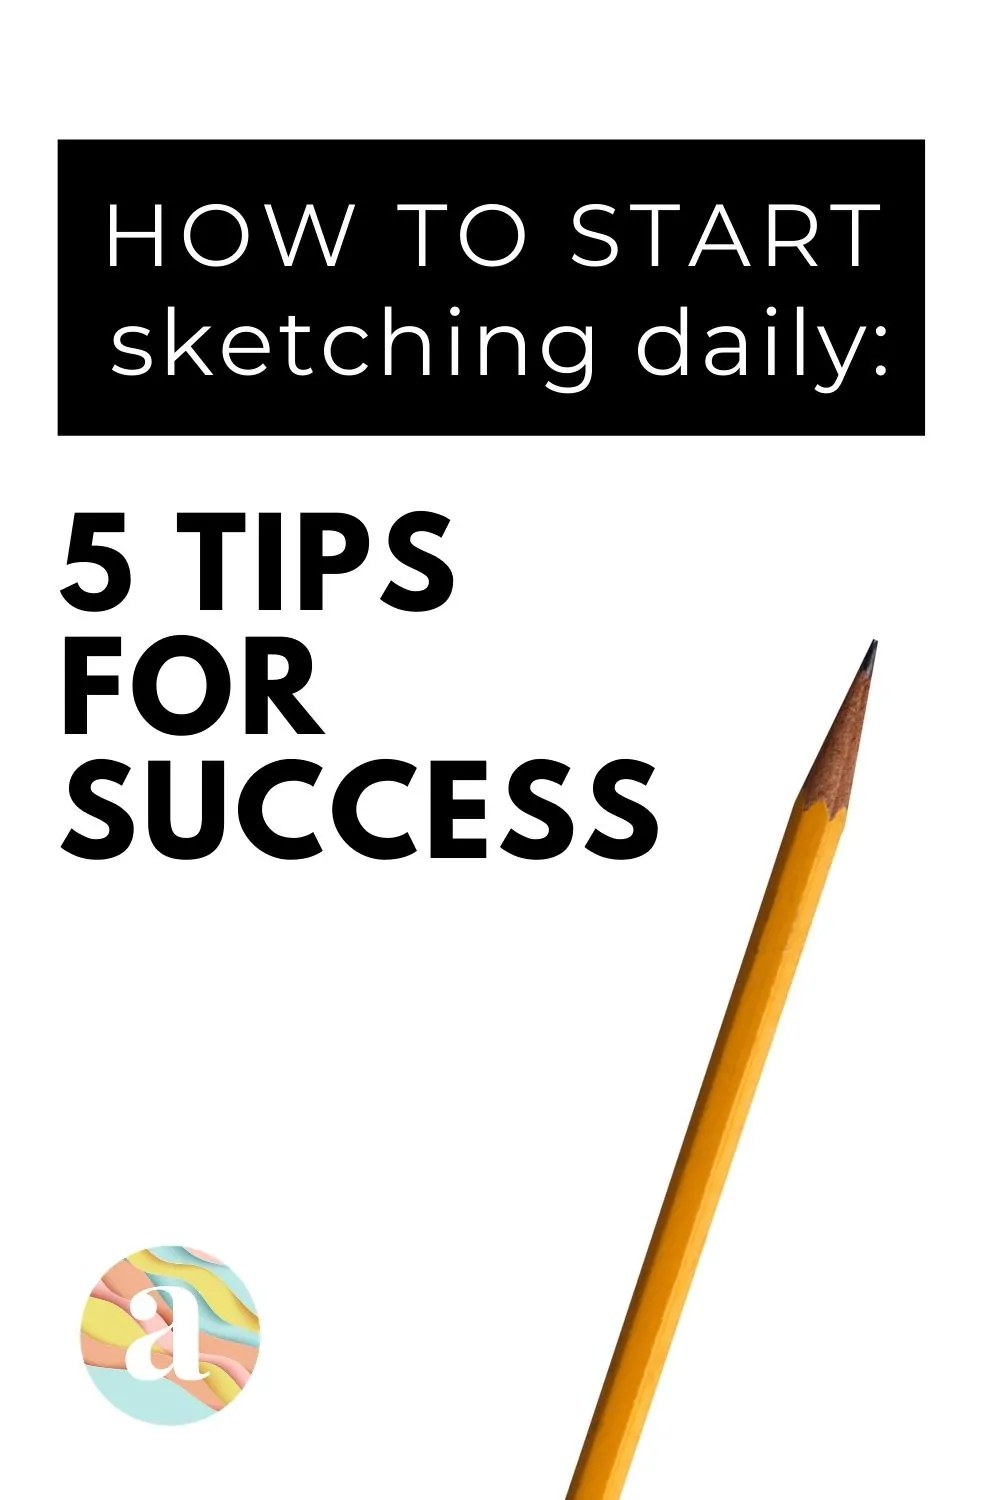 HOW TO GET STARTED WITH SKETCHING